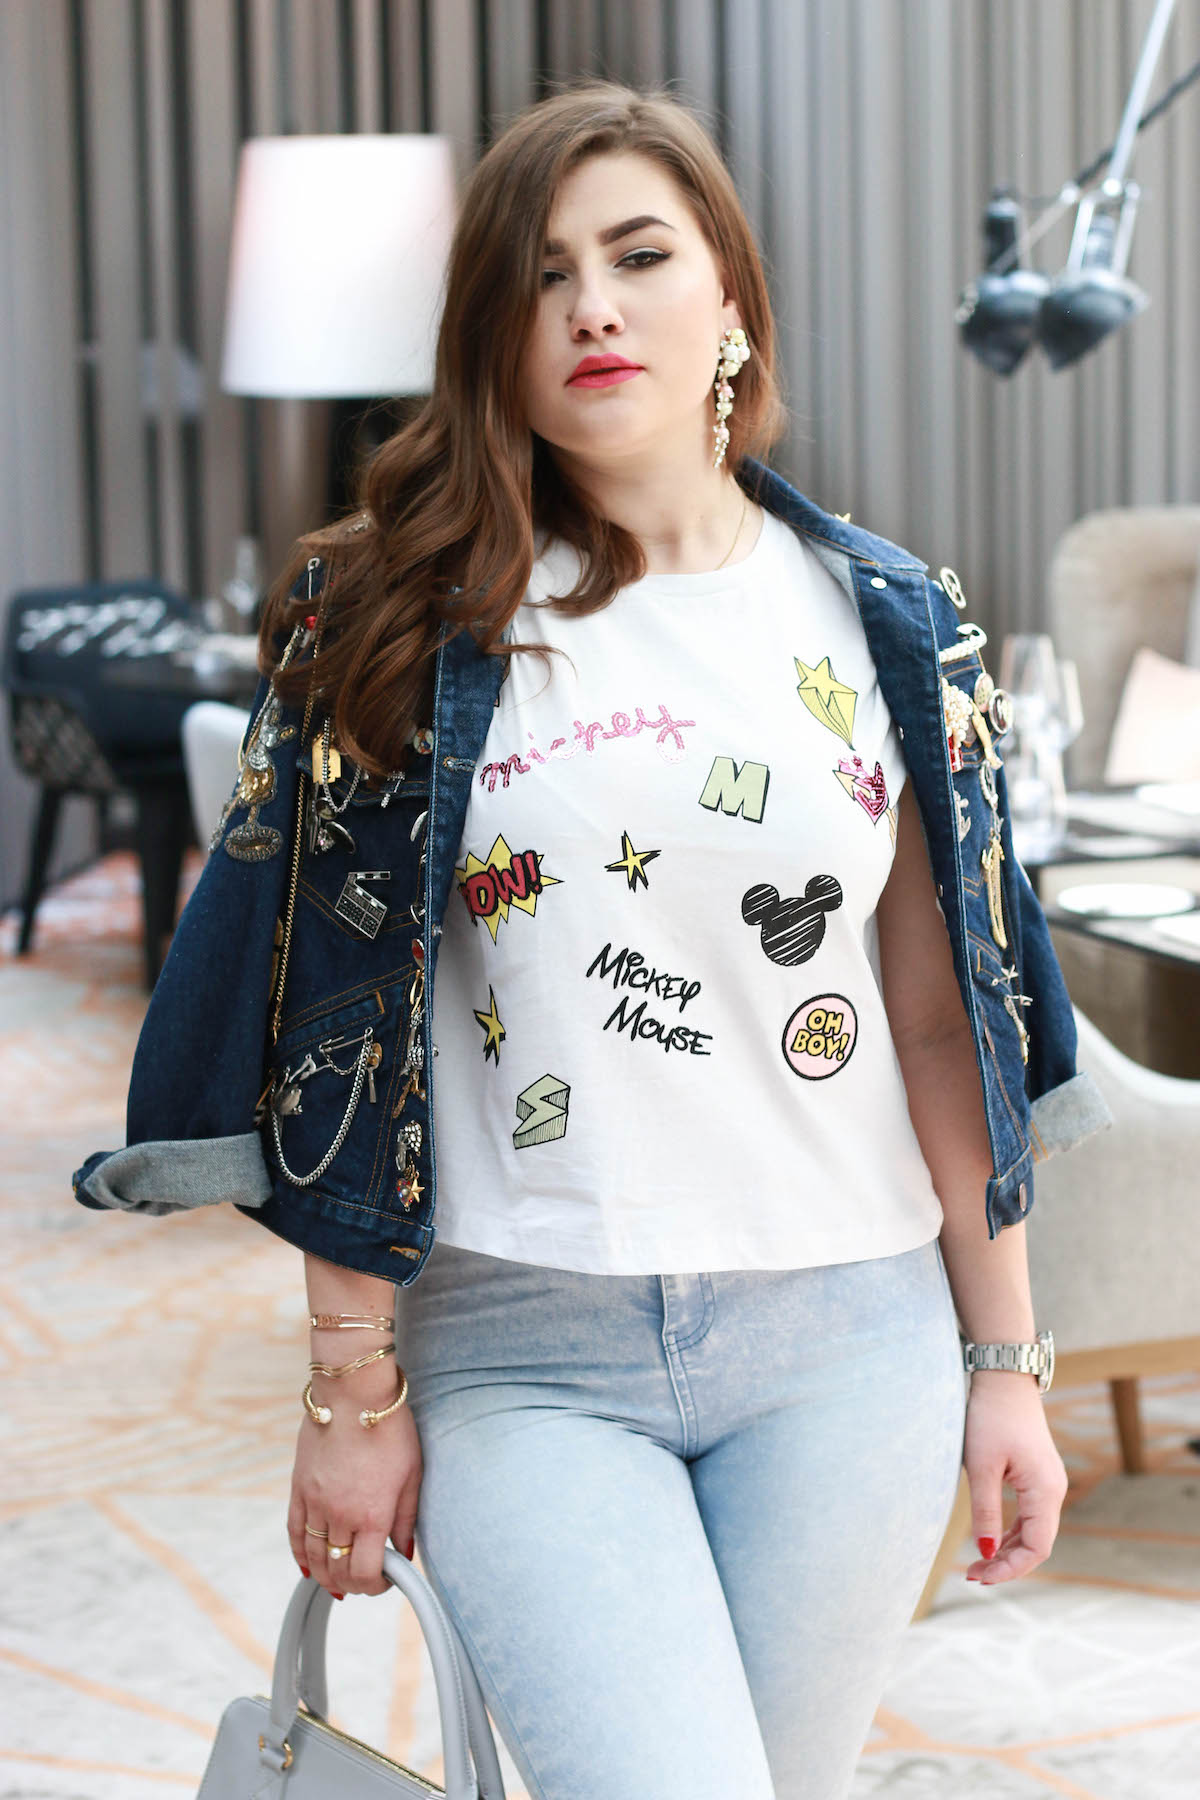 sara-bow-disney-outfit-tshirt-marc-jacobs-jeans-jacke